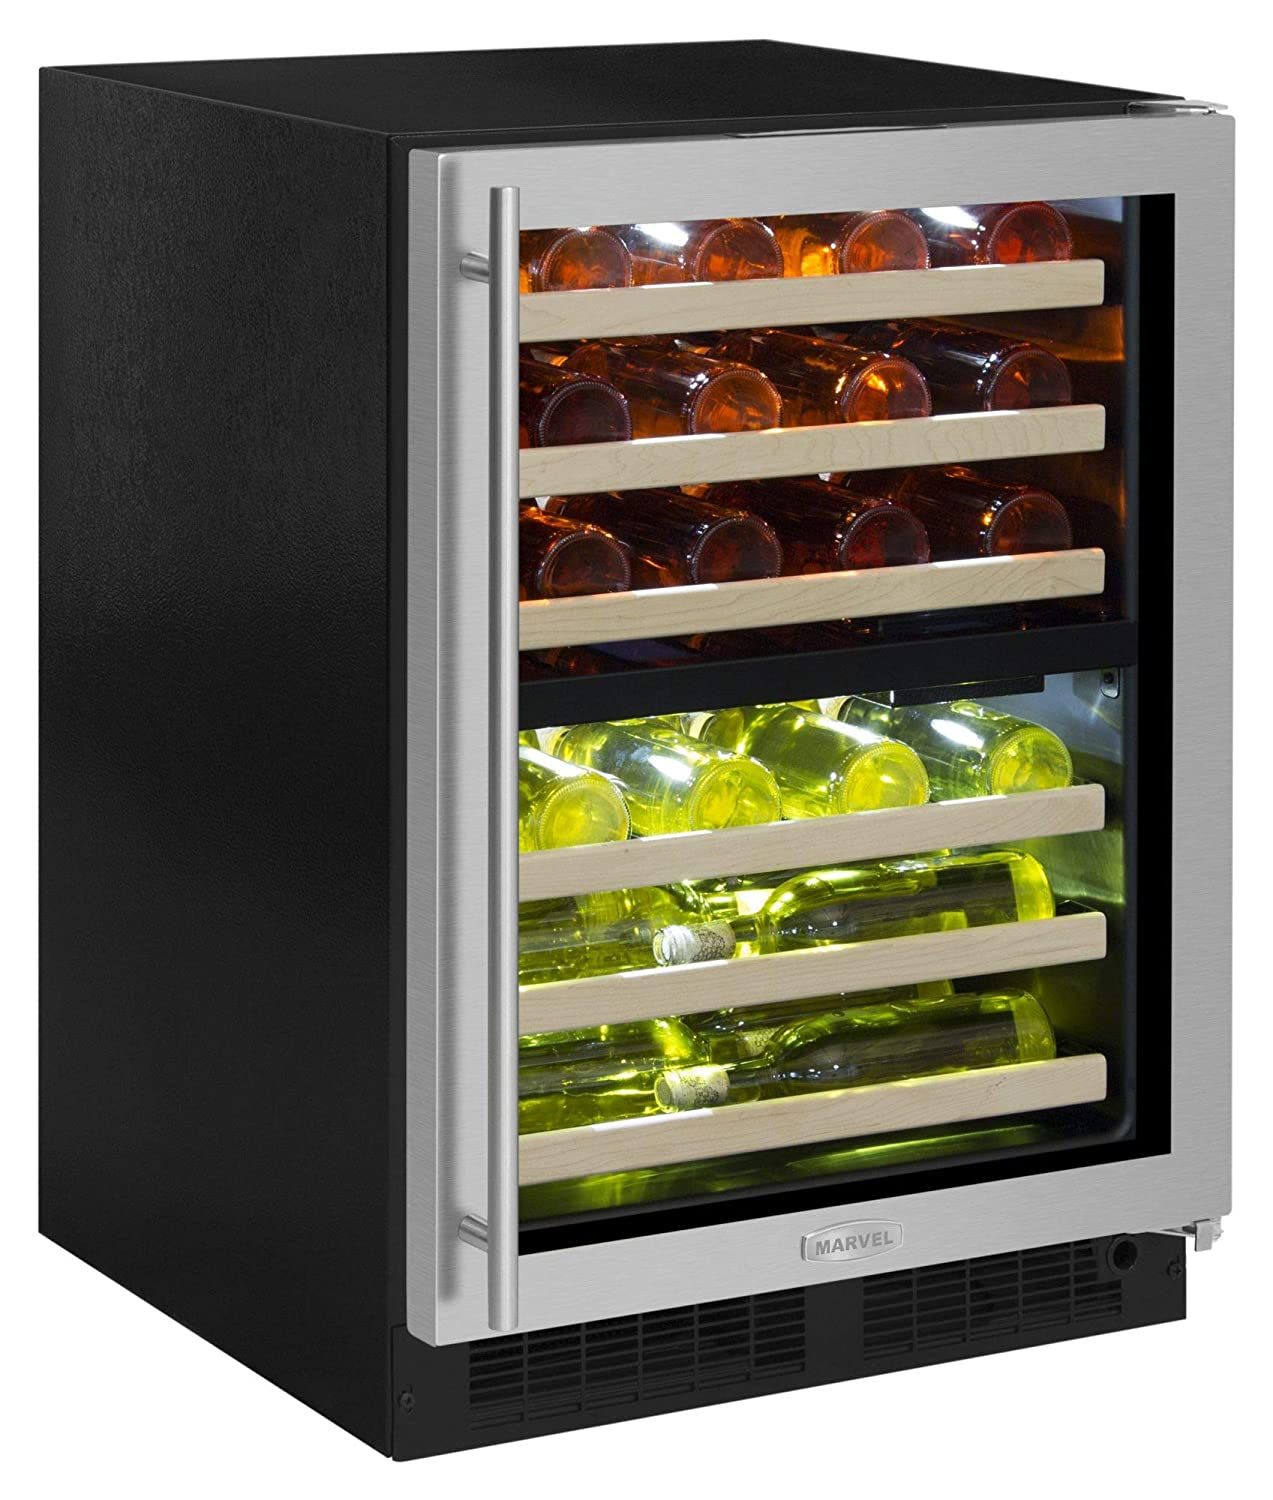 Marvel ML24WDG3LS Wine Cellar